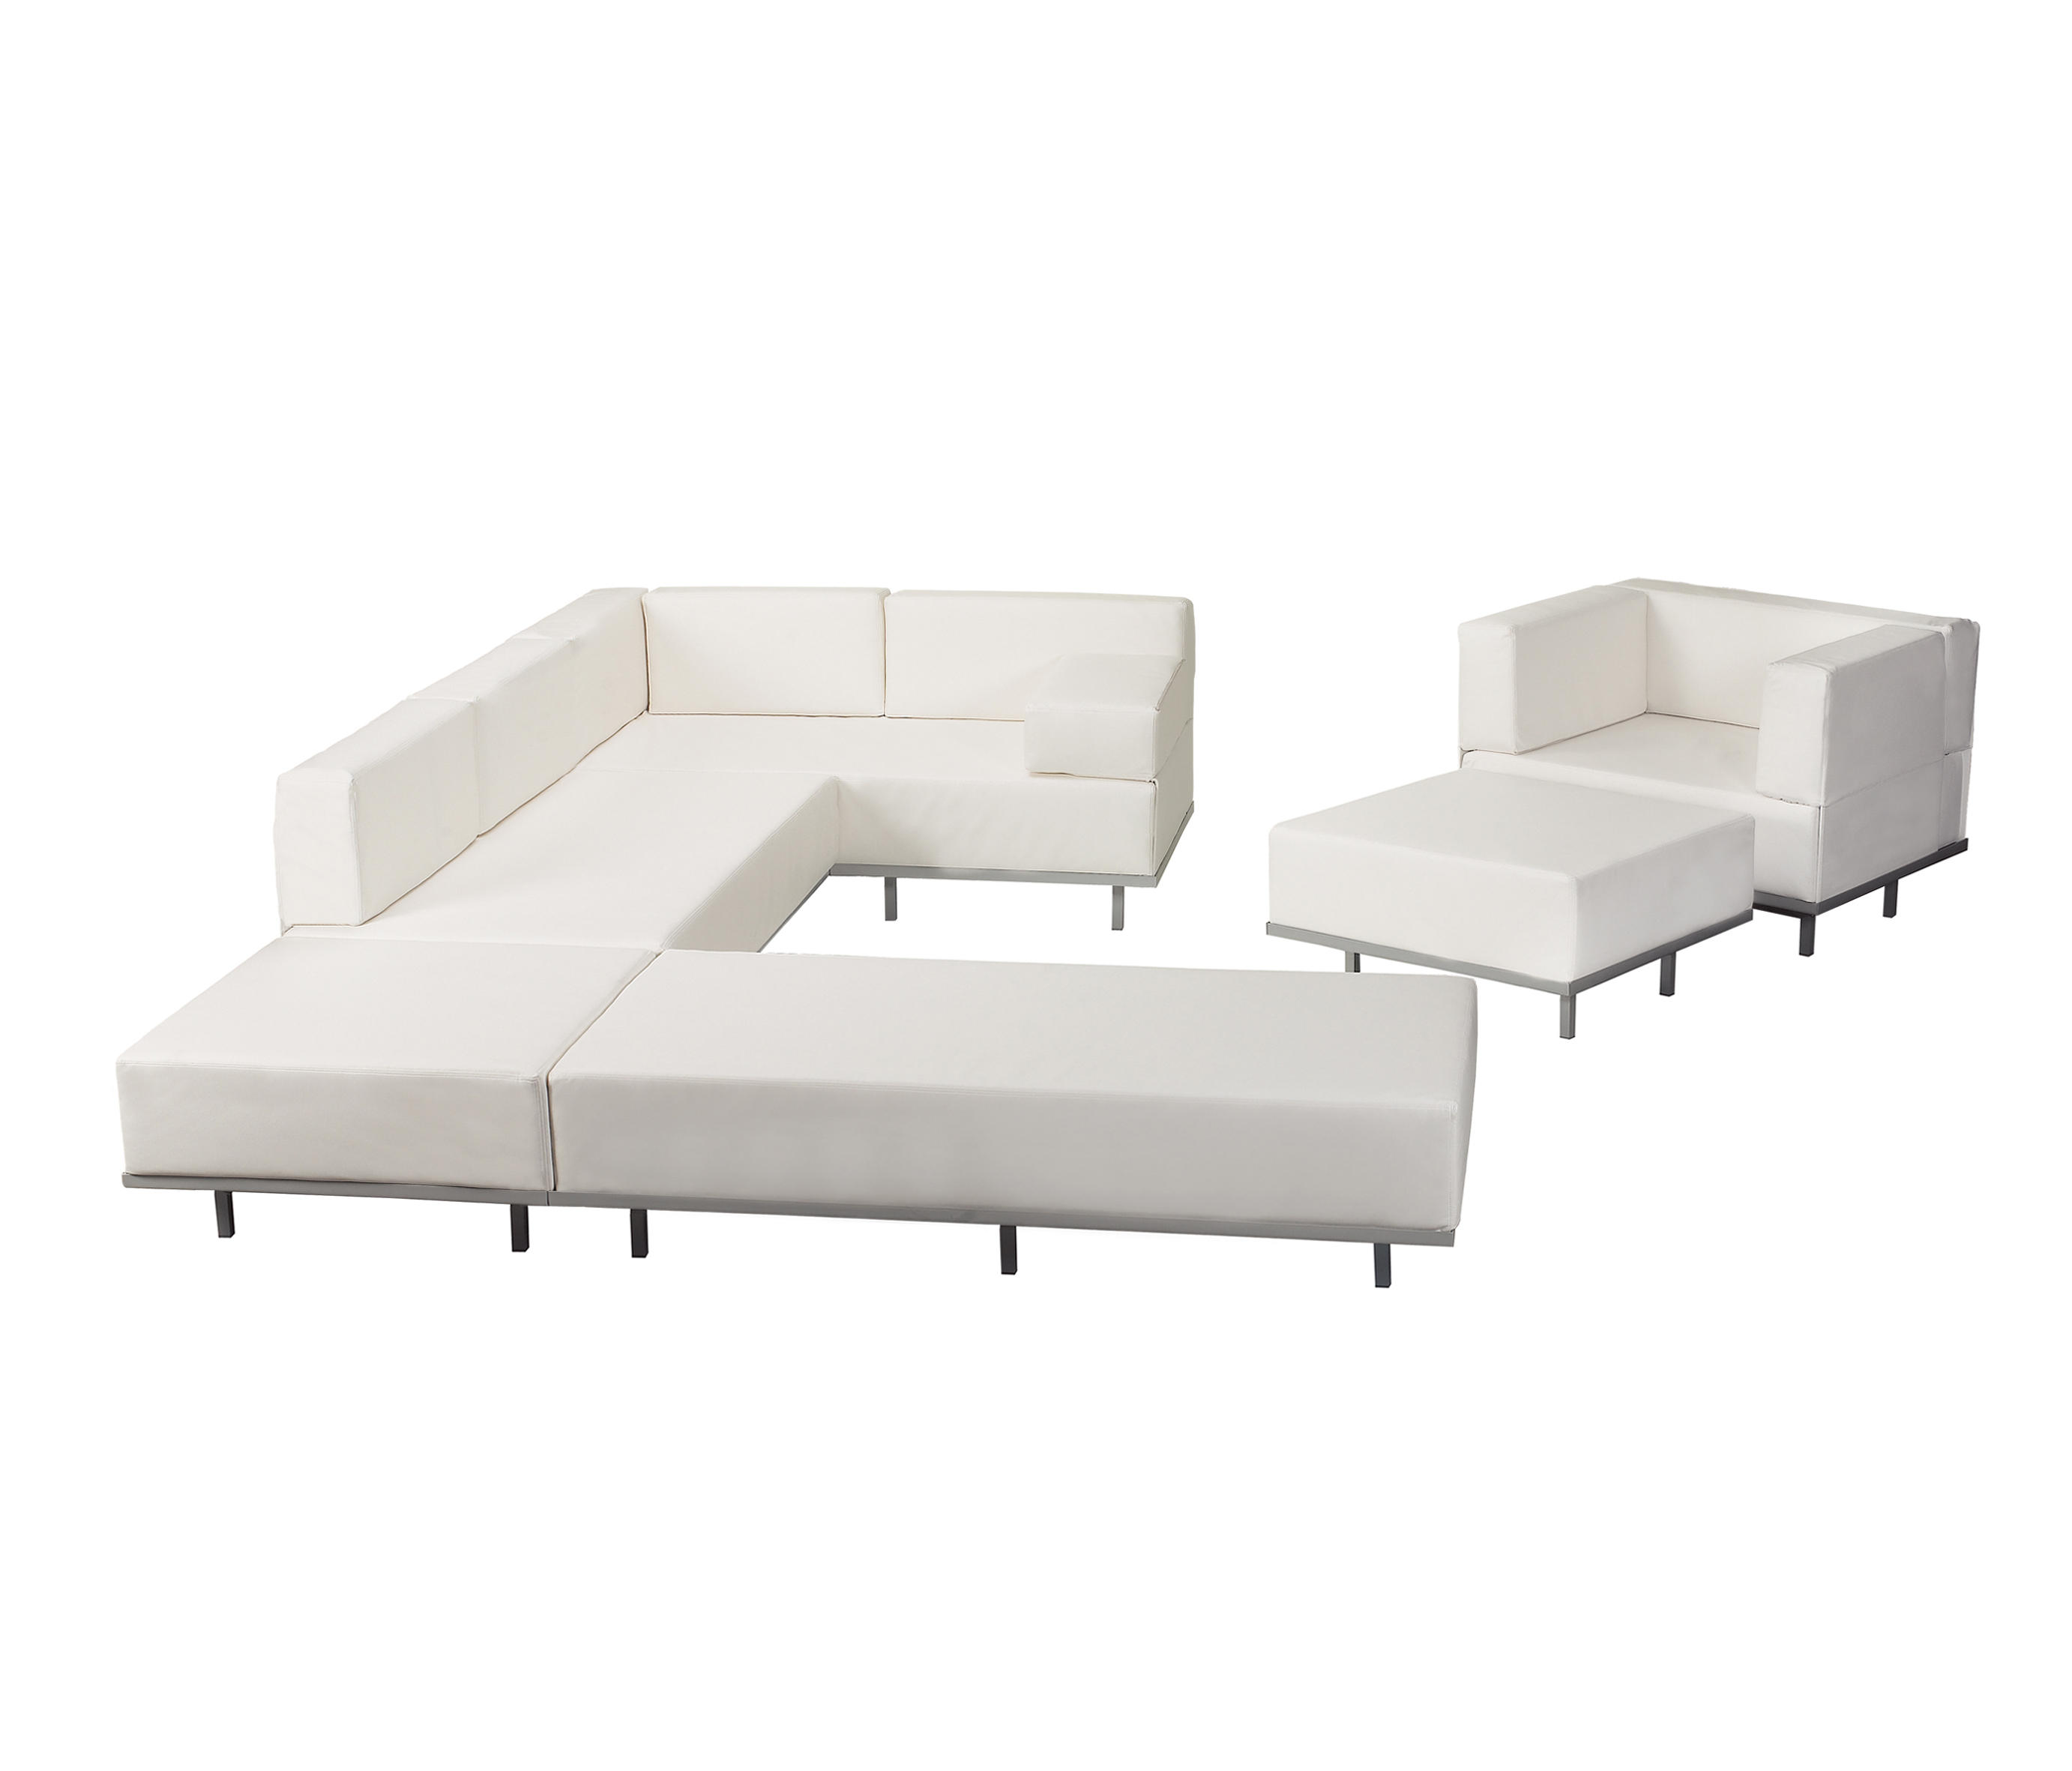 LAZY - Gartensofas von Royal Botania | Architonic